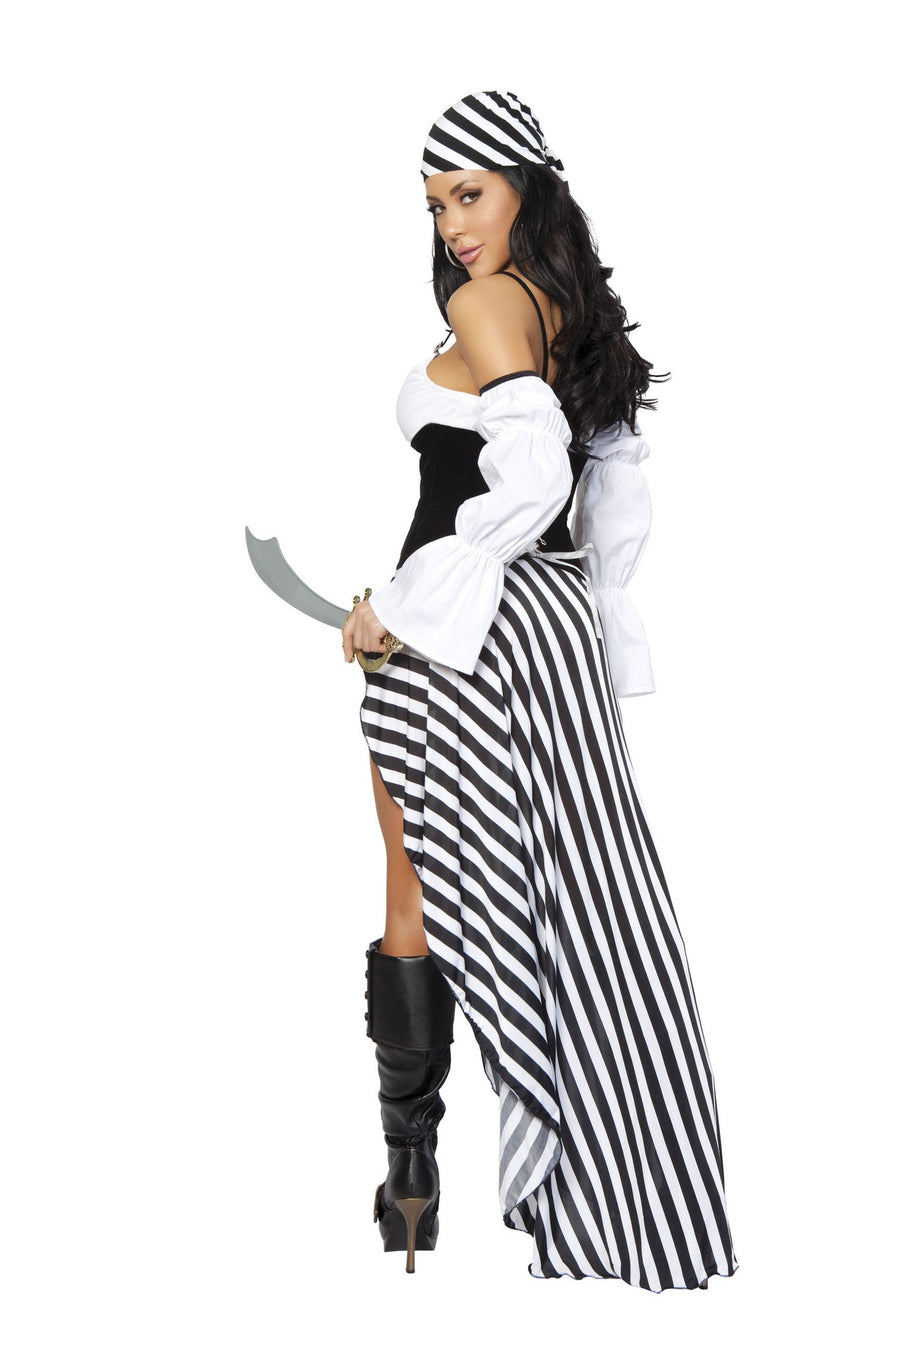 4244 - 6pc Pirate Lass ${description} | Roma Costume and Roma Confidential wholesale manufacturer of Women Apparel bulk world wide wholesale and world wide drop ship services for Adult Halloween Costumes, Sexy and Elegant Lingerie, Rave Clothing, Club wear, and Christmas Costumes. Costumes,Best of 2011, Roma Costume, Inc., Roma Costume, Roma Confidential, Wholesale clothing, drop ship, drop ship service, Wholesale Lingerie, Wholesale Adult Halloween Costumes, Rave Clothing, EDM Clothing, Festival Wear, Christmas Costumes, Clubwear, Club wear.